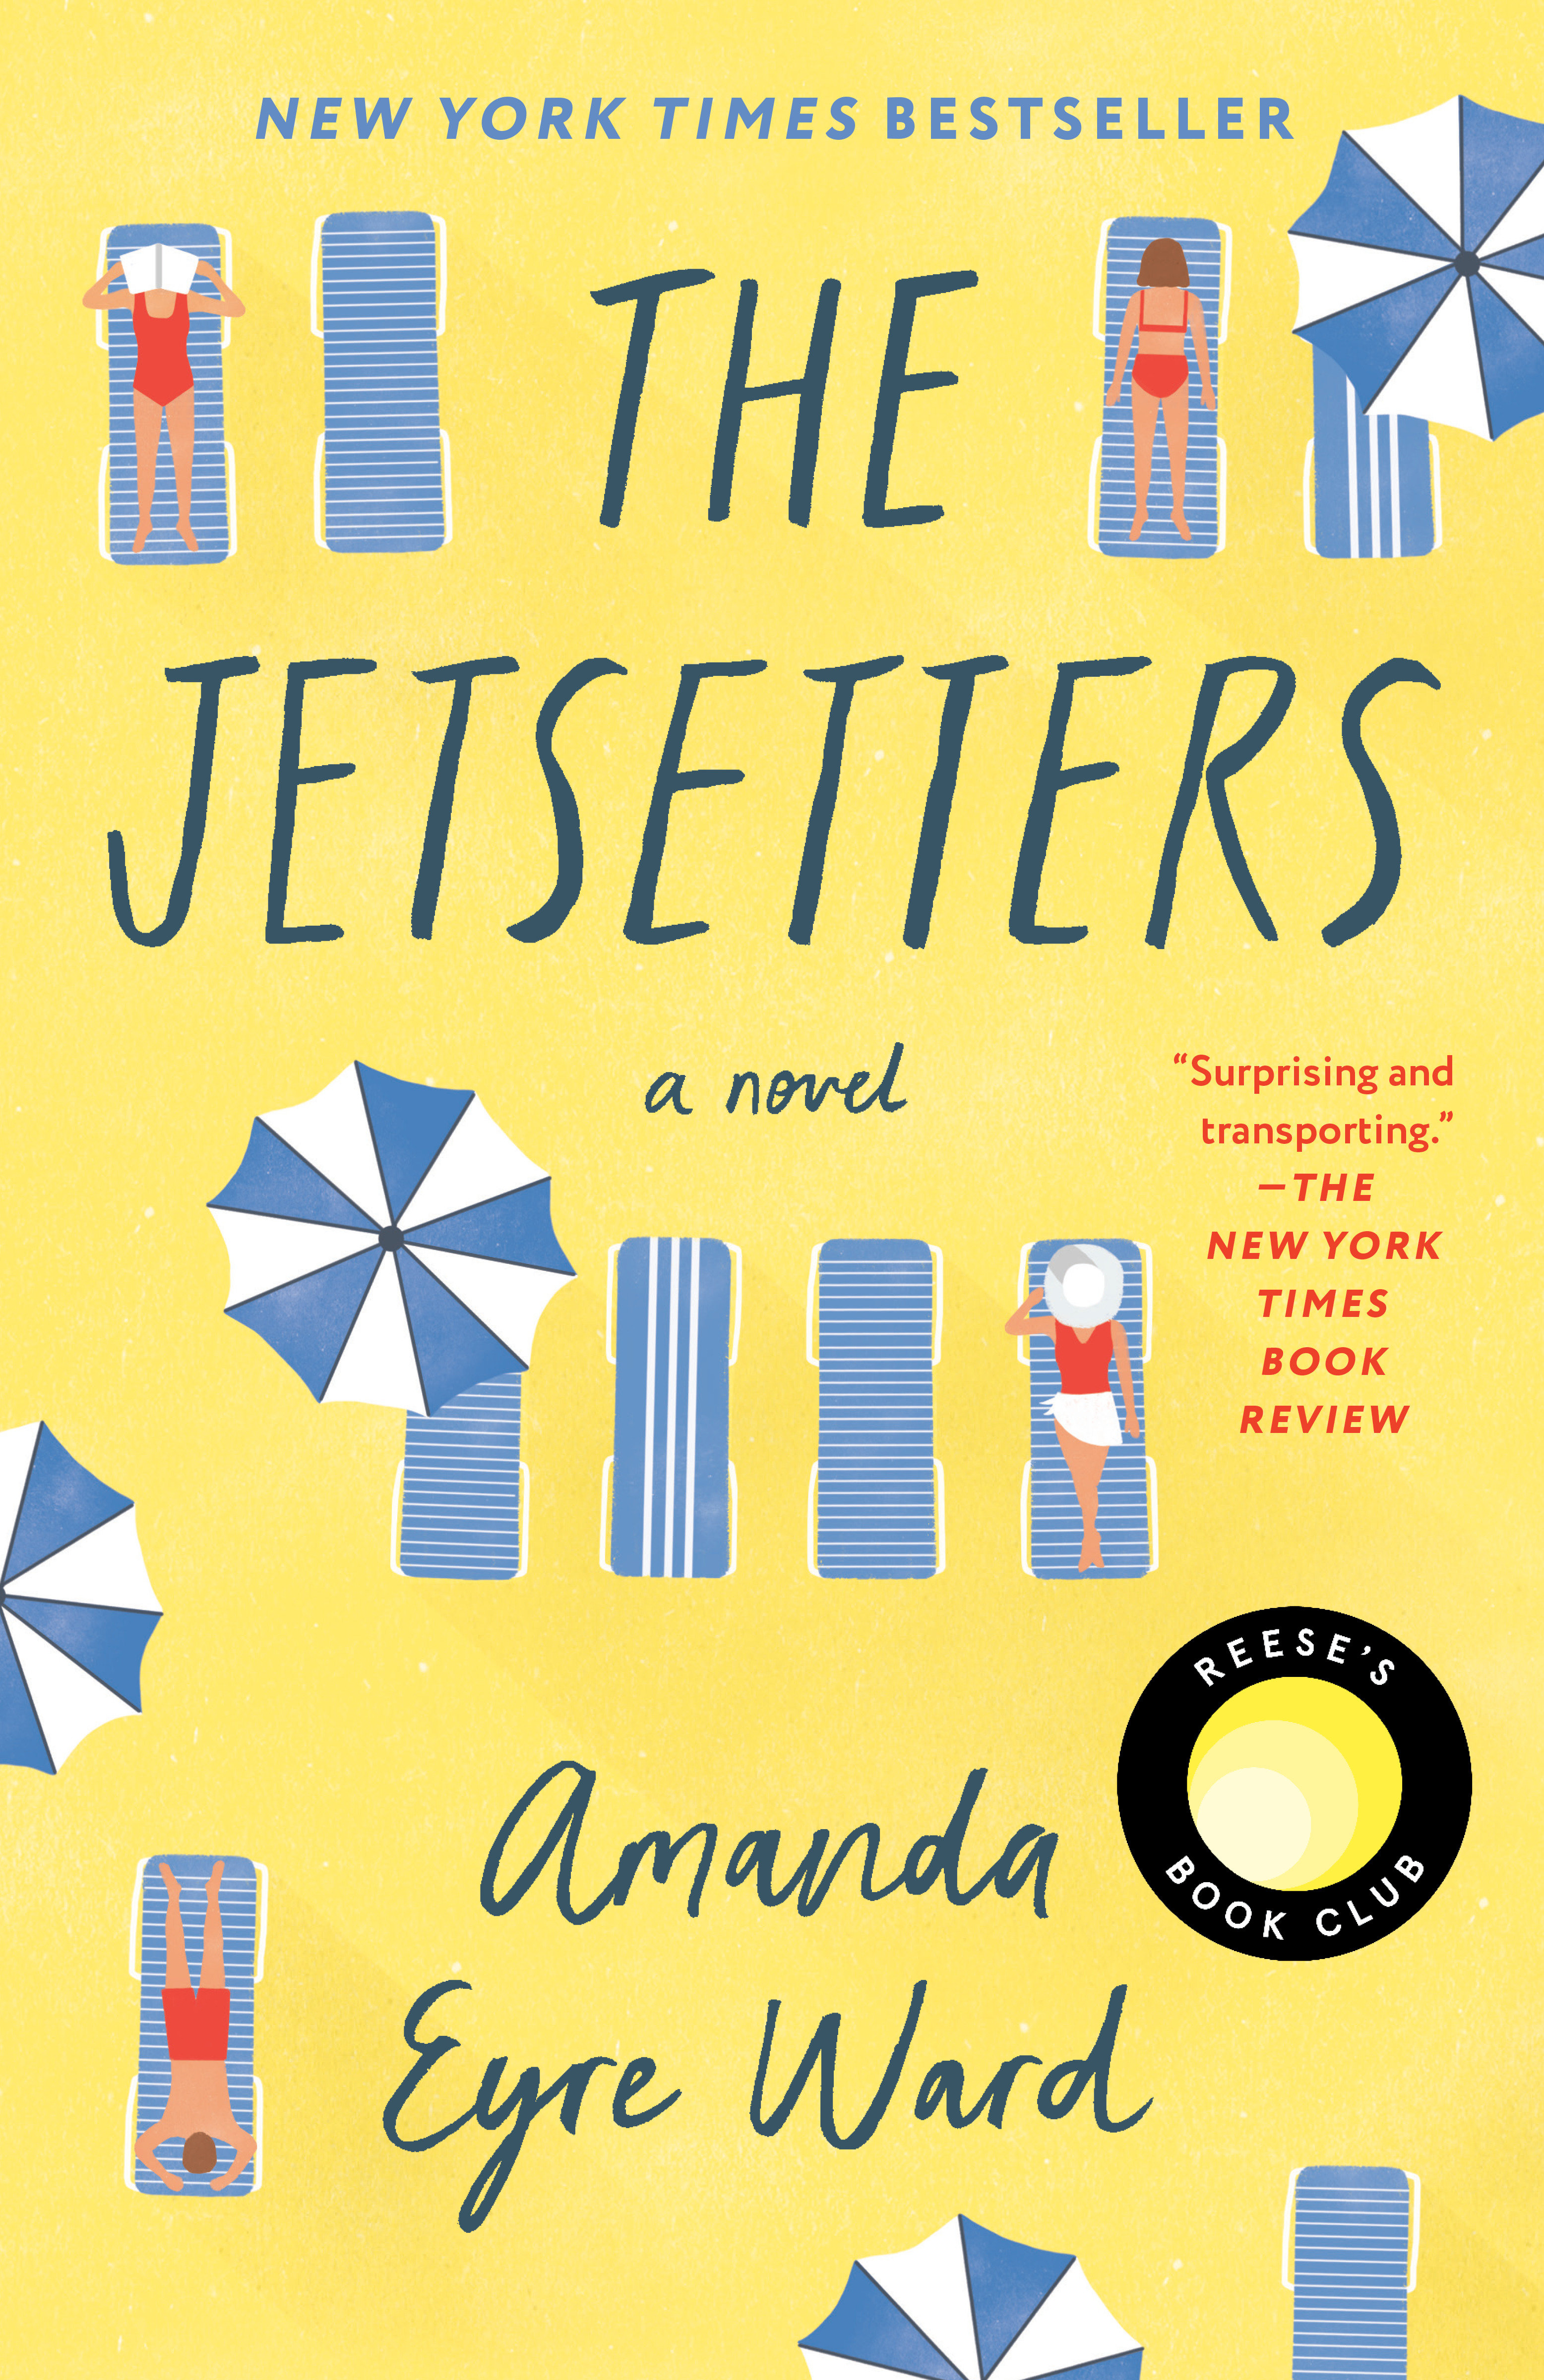 Cover Image of The Jetsetters